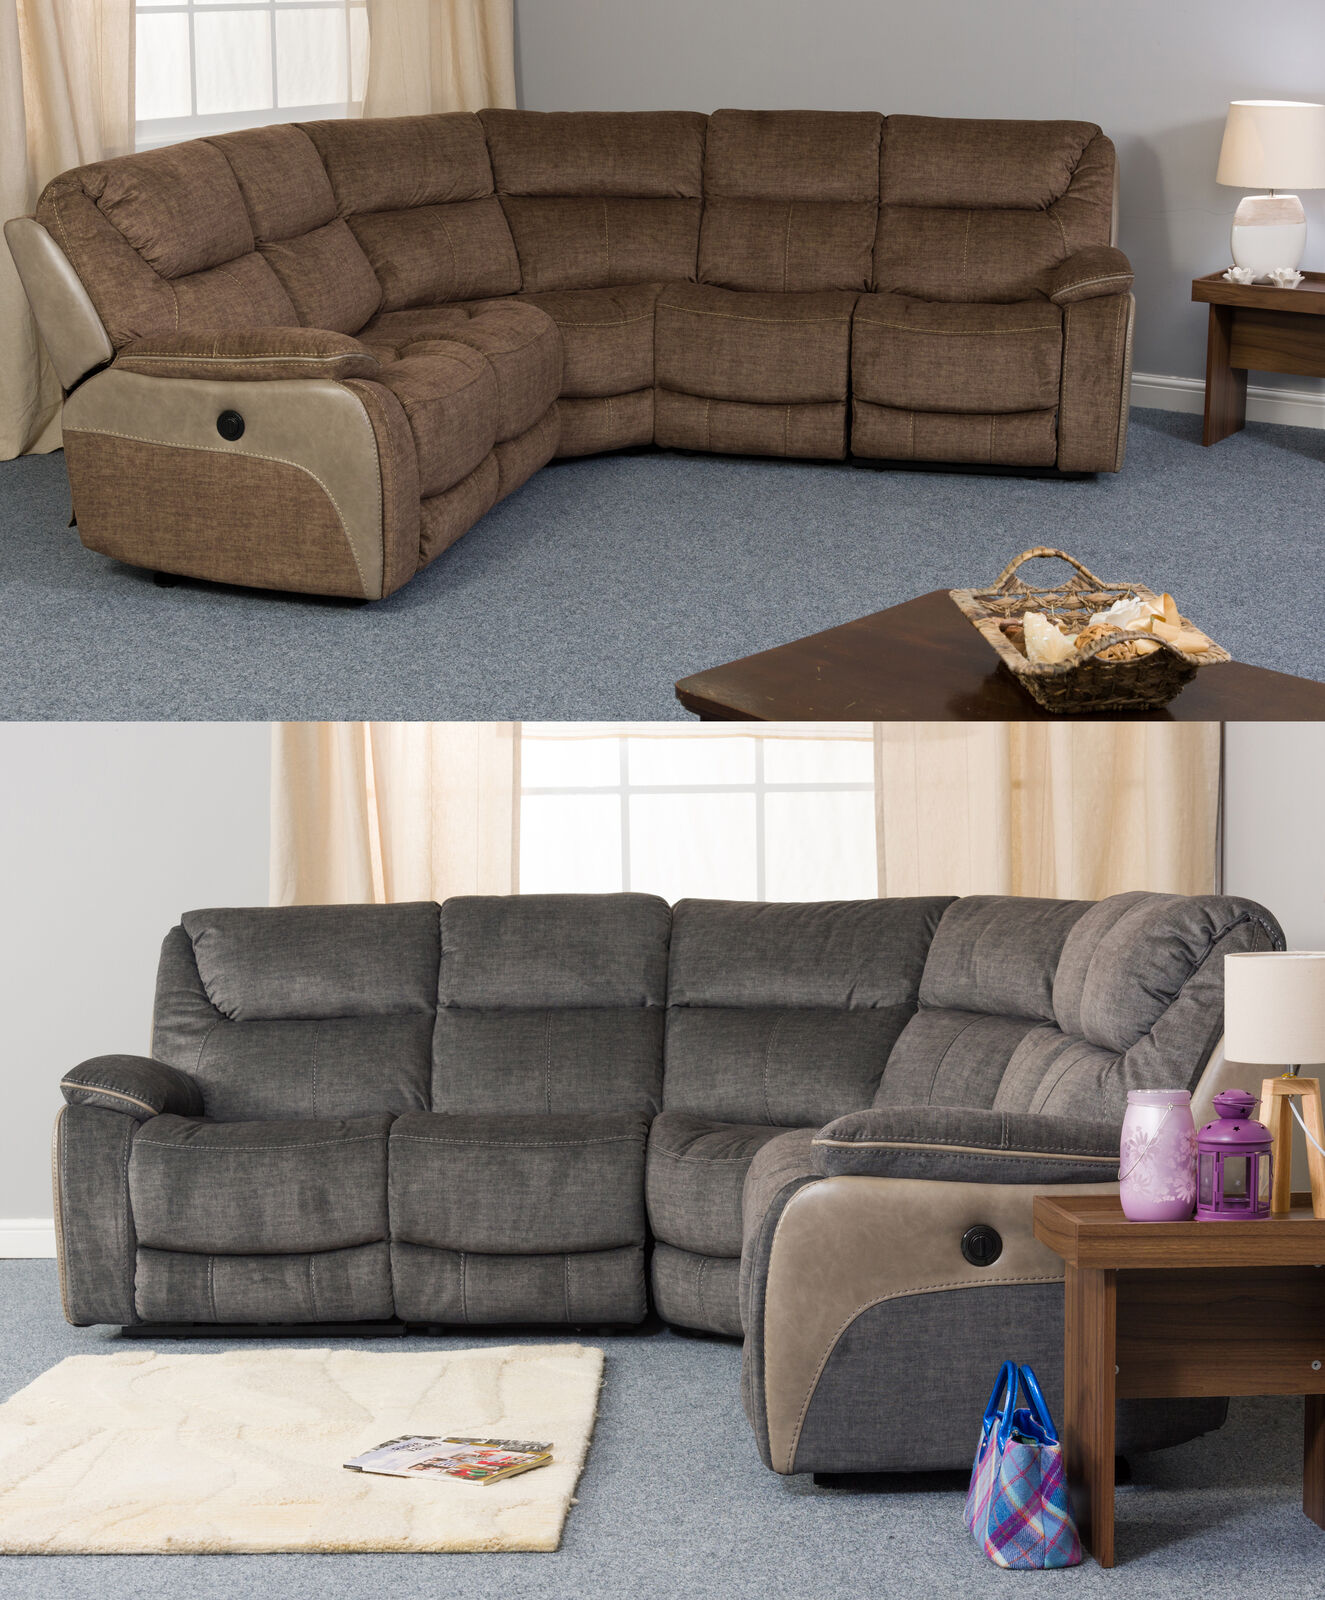 Details about Trieste Fabric Power Recliner Corner Sofa Comfort Various  Sizes and Colours